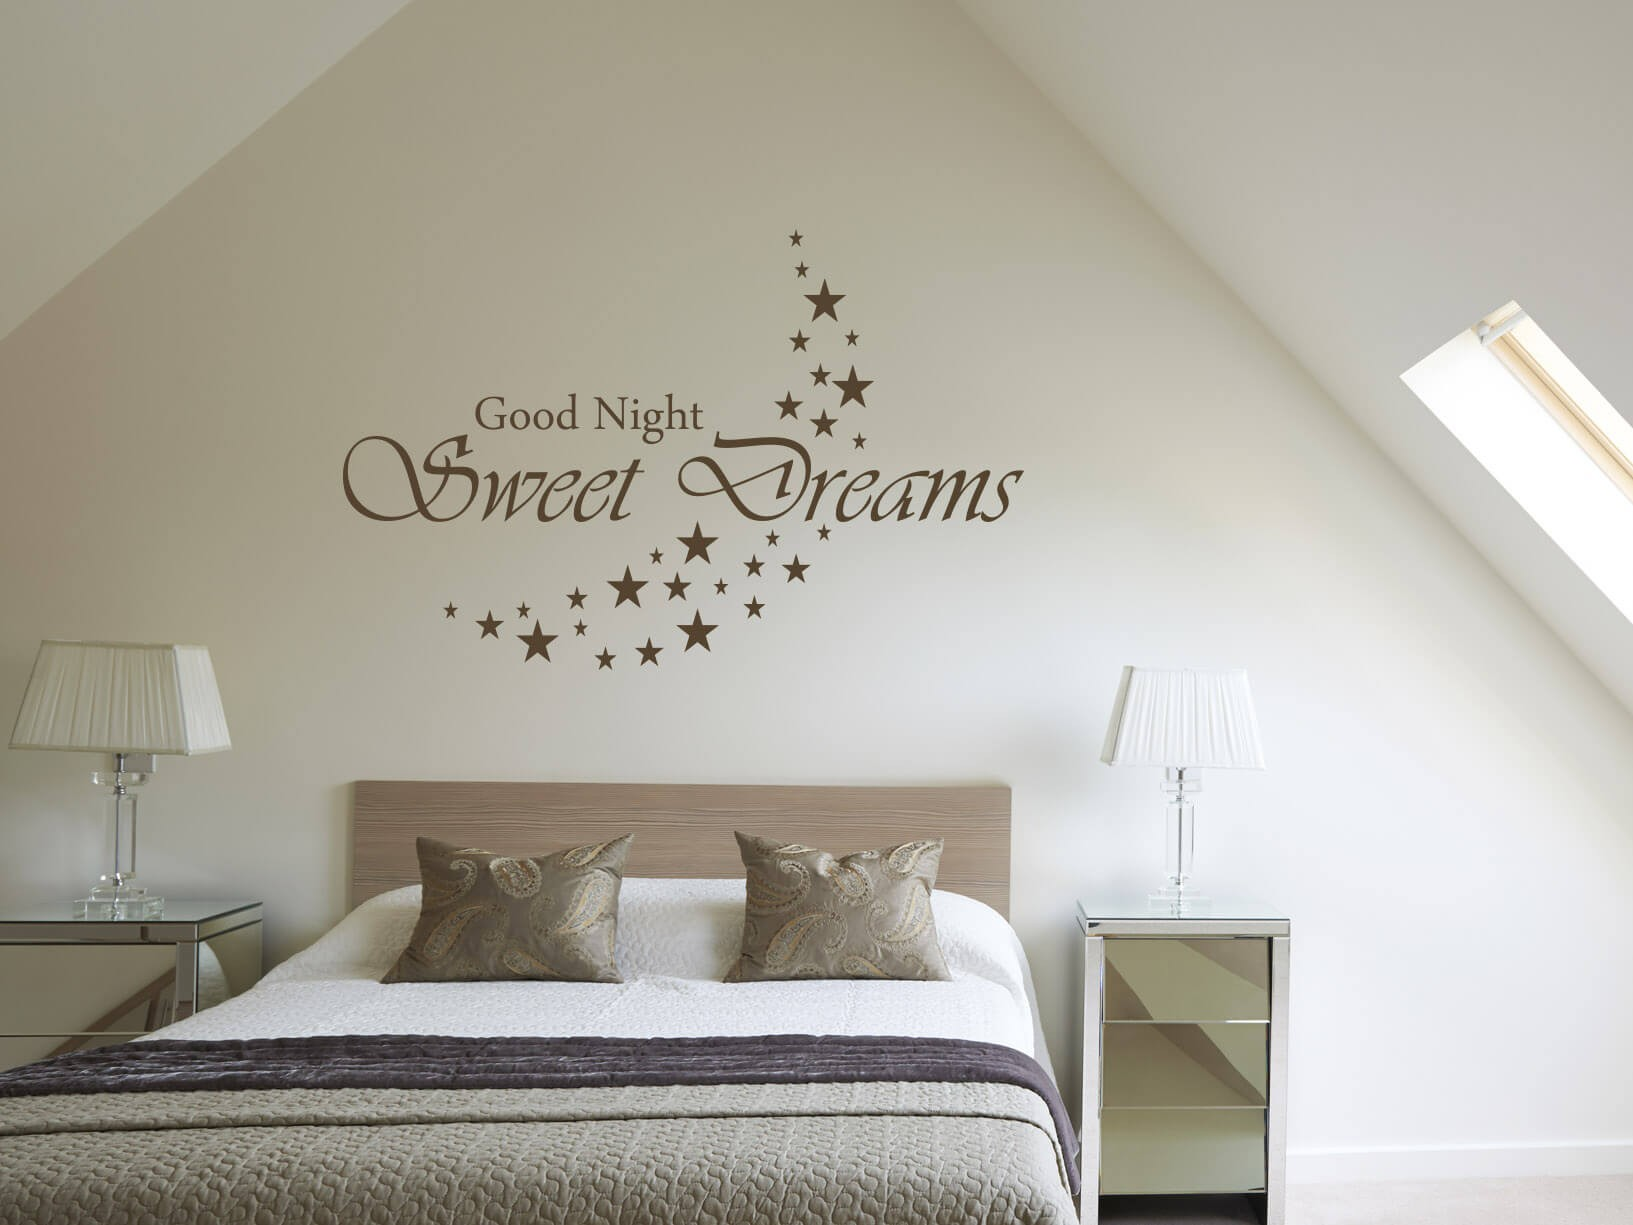 Tekst Op Canvas Slaapkamer Muursticker Quotgood Night Sweet Dreams Quot Met Sterren Maan